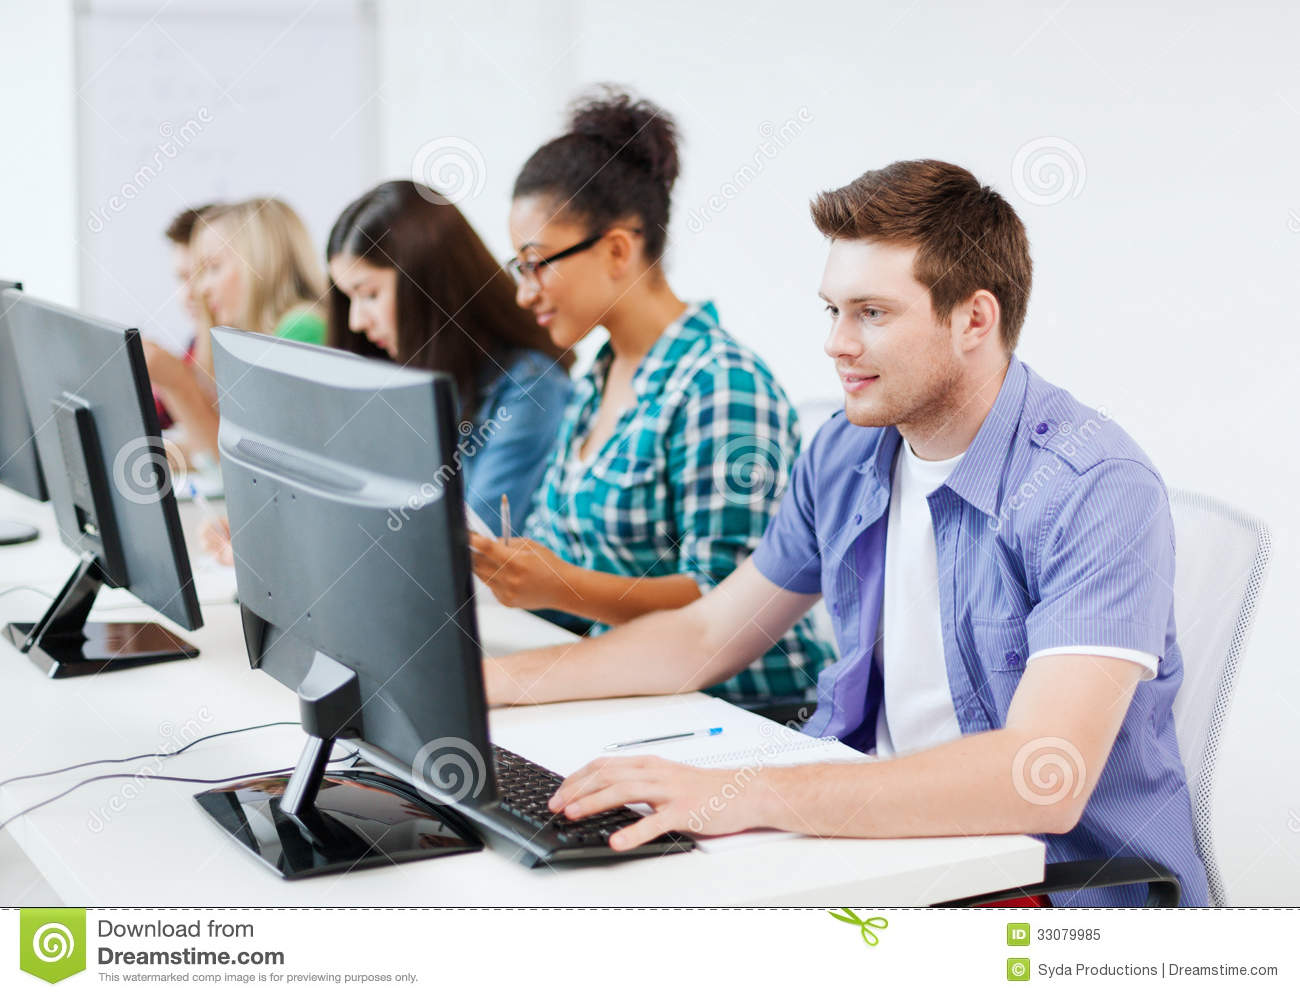 Student With Computer Studying At School Royalty Free ...